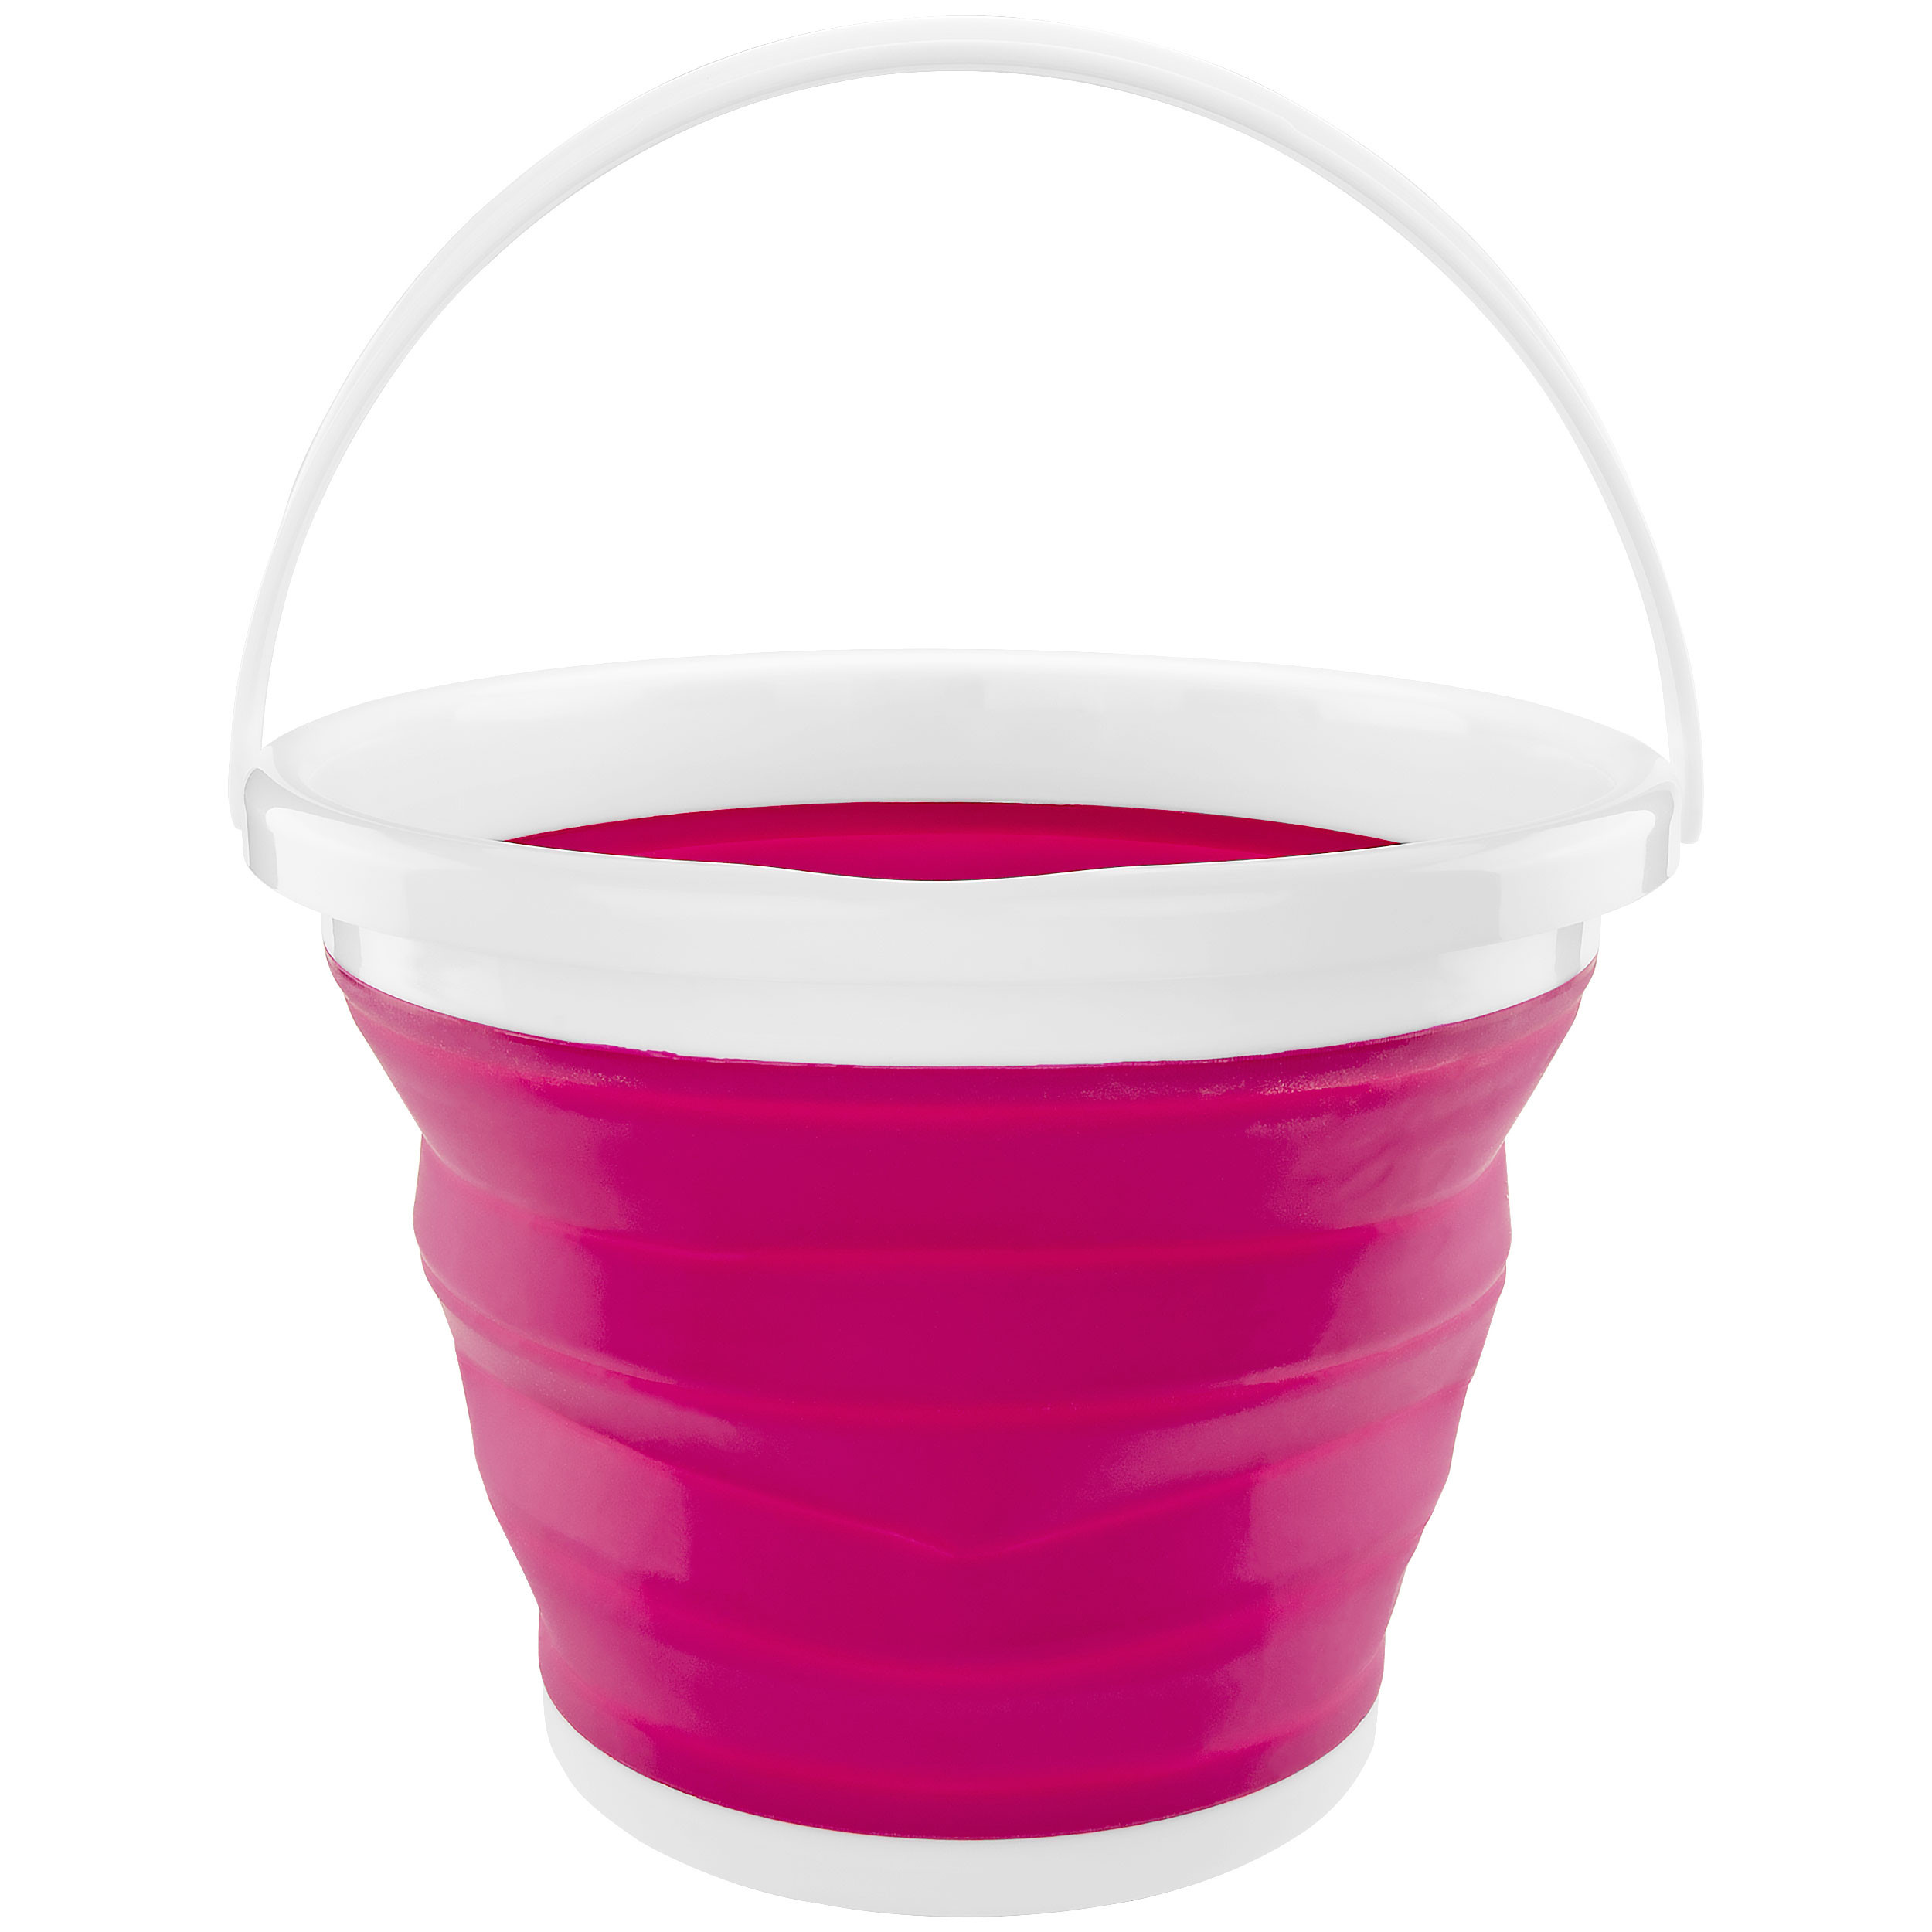 Southern Homewares Foldable Silicone Collapsible 2.65 Gallon Bucket Pink